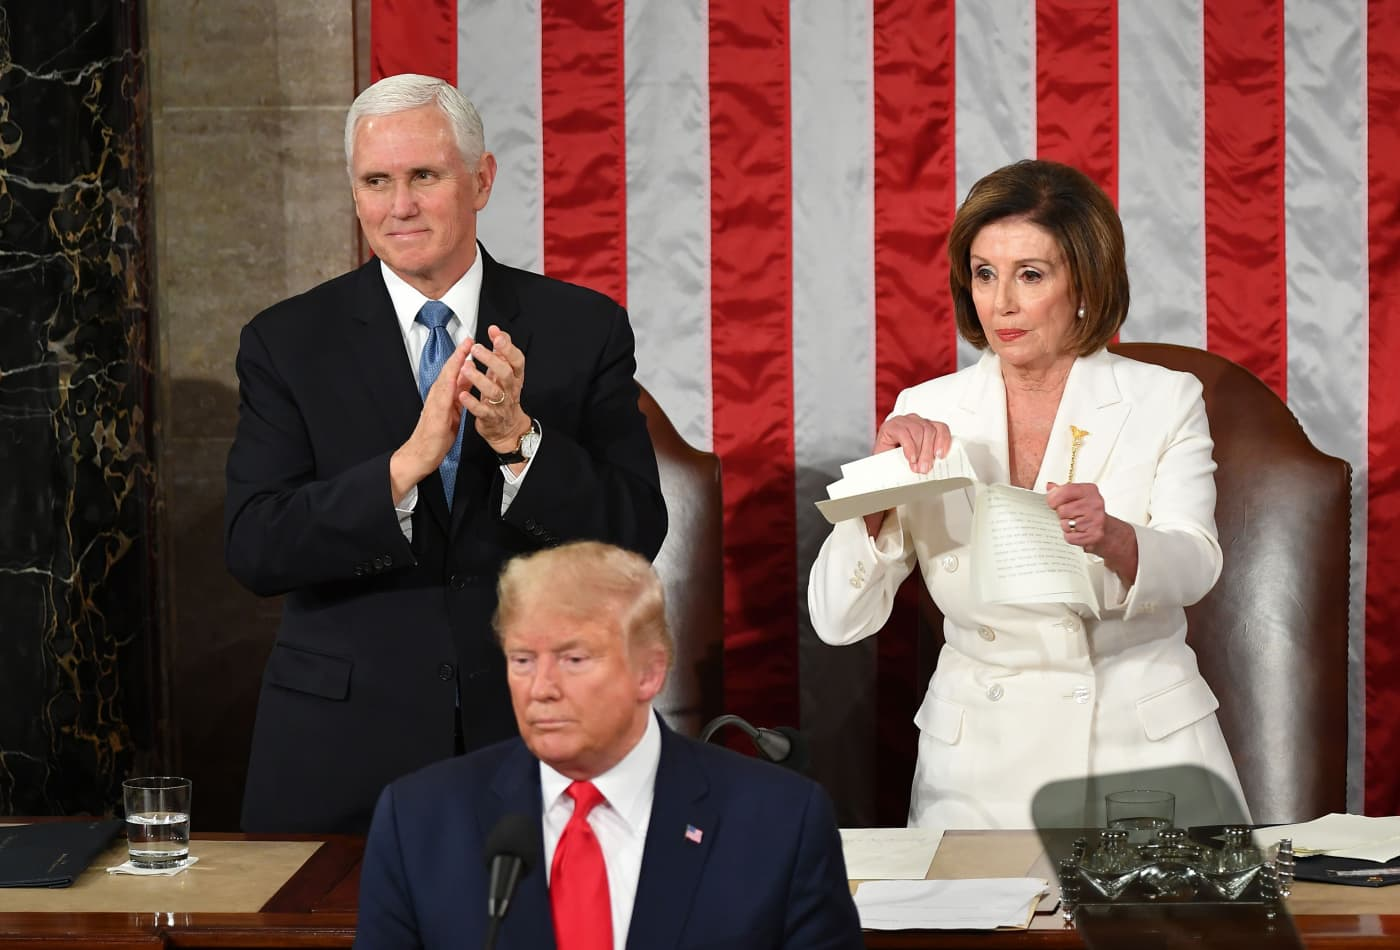 State of the Union highlights: Trump honors Limbaugh, and Pelosi rips up speech